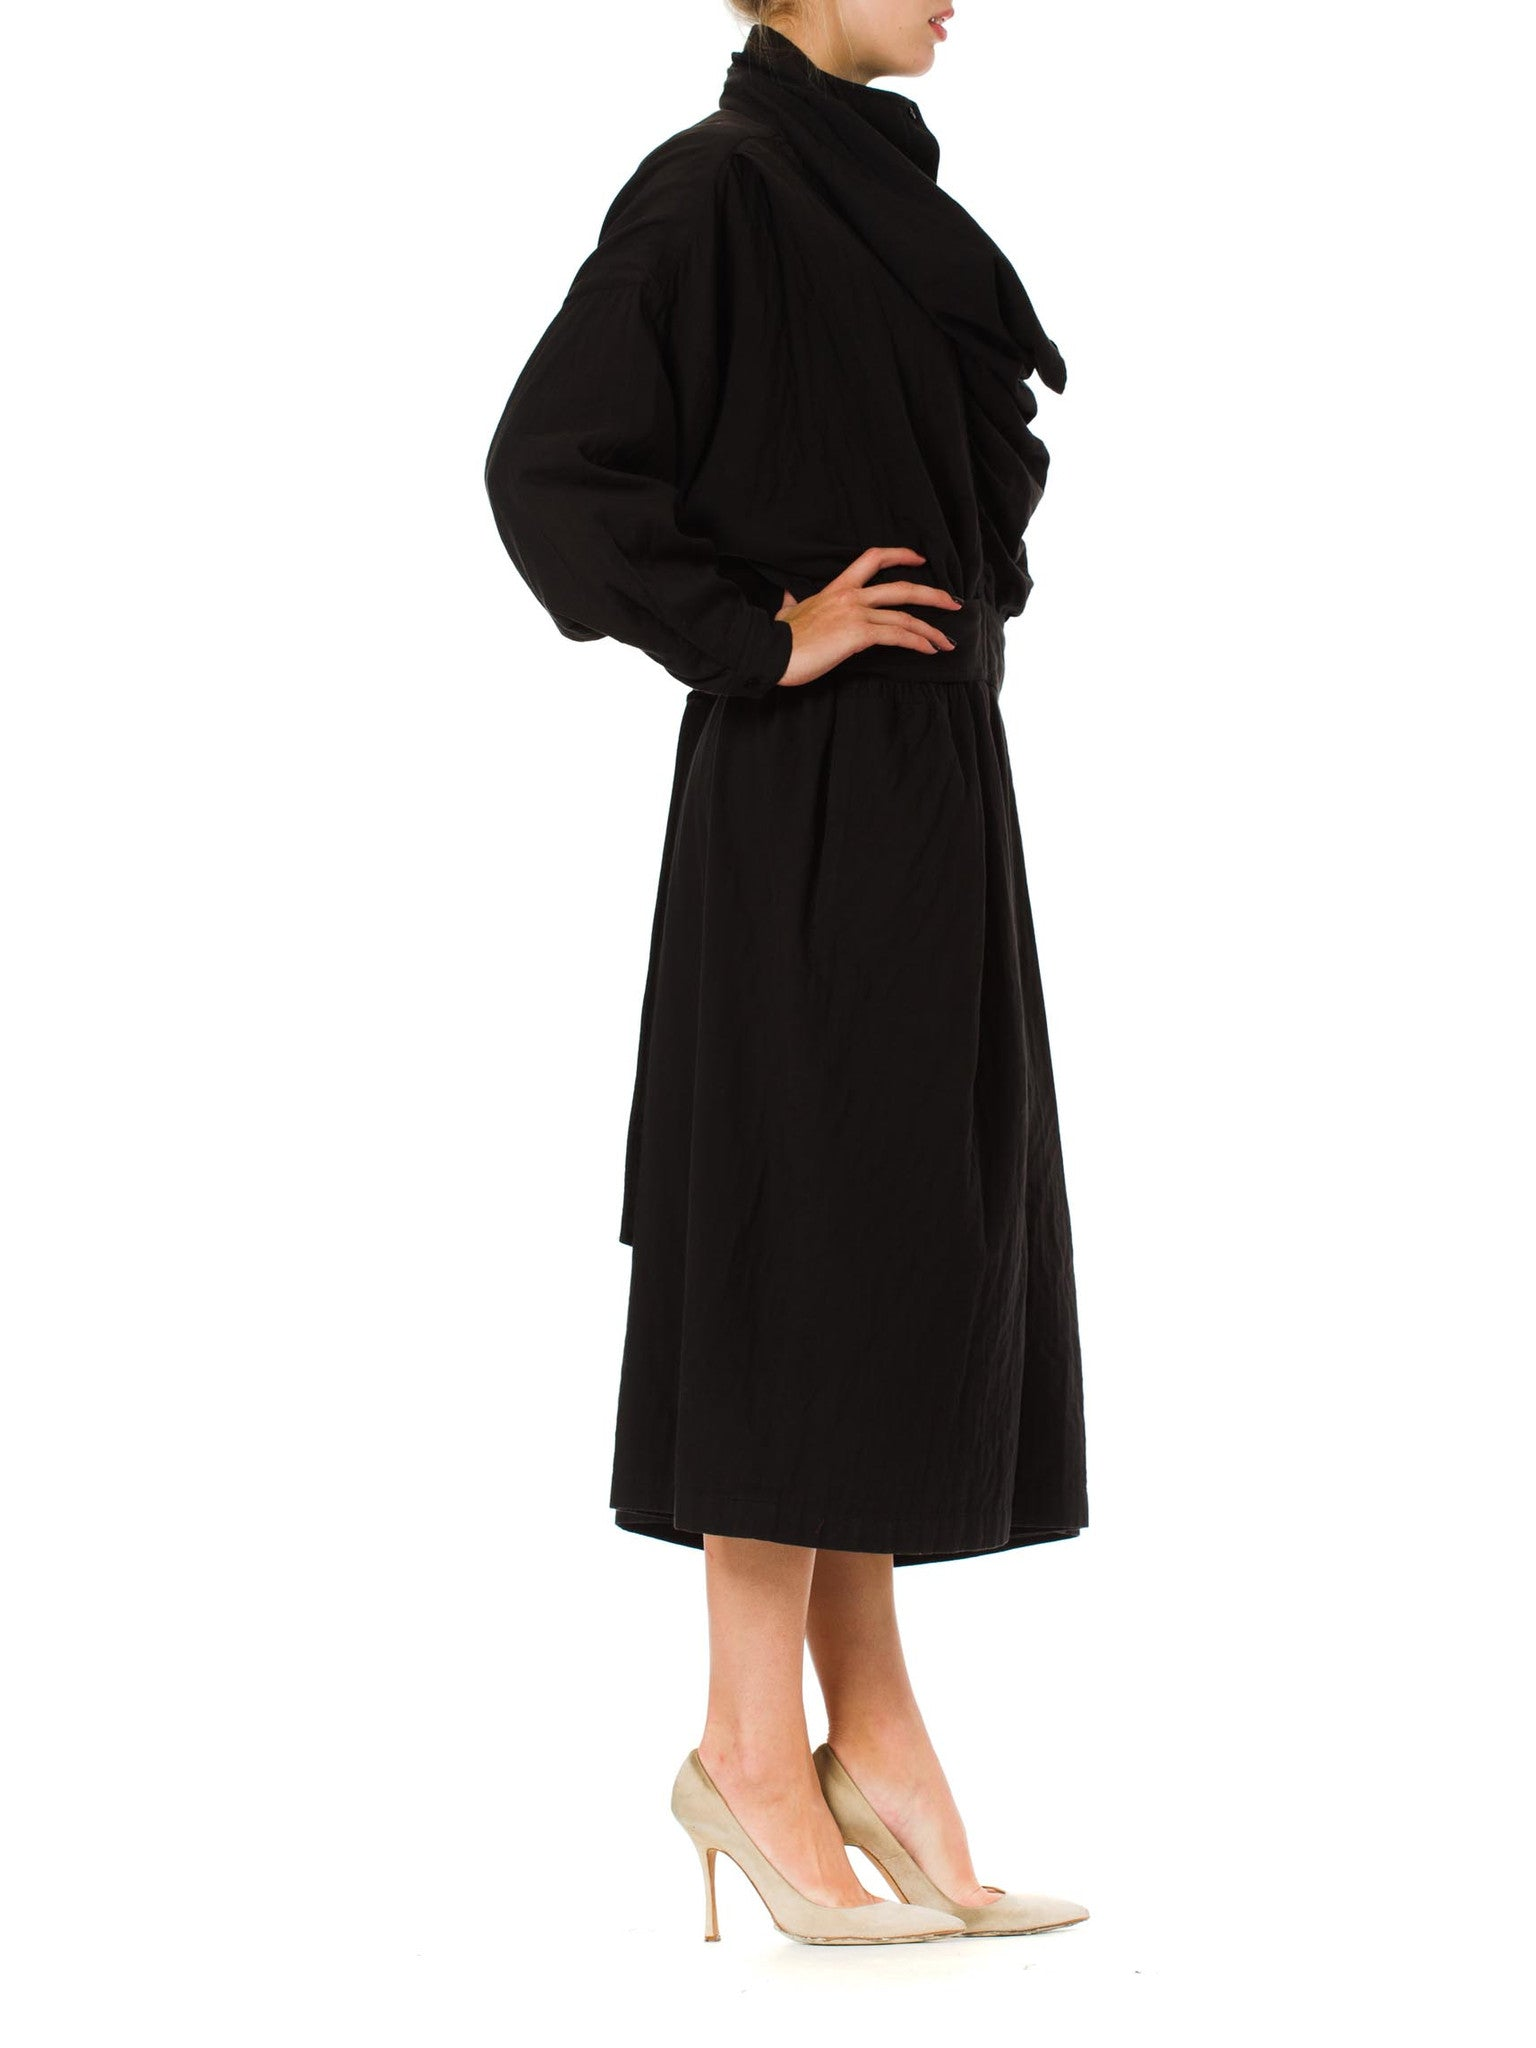 1980S ISSEY MIYAKE Black Cotton Dress With Draped Neck & Sleeves